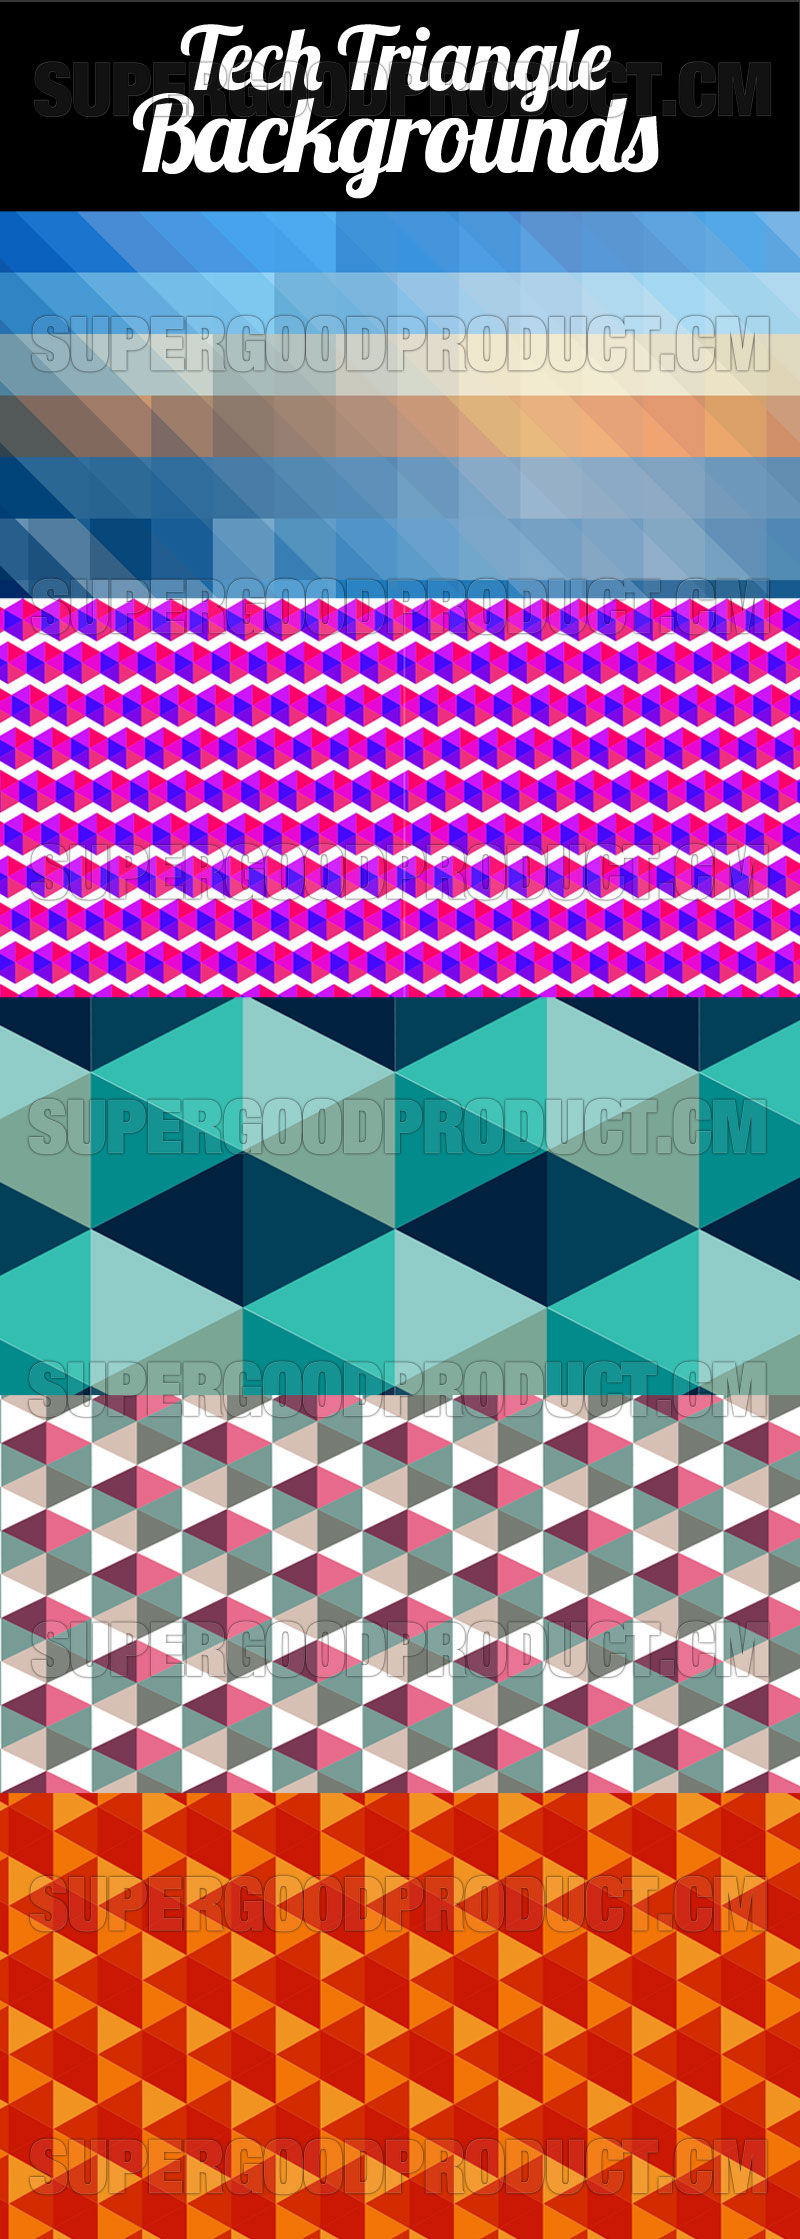 Tech-Triangles-Backgrounds